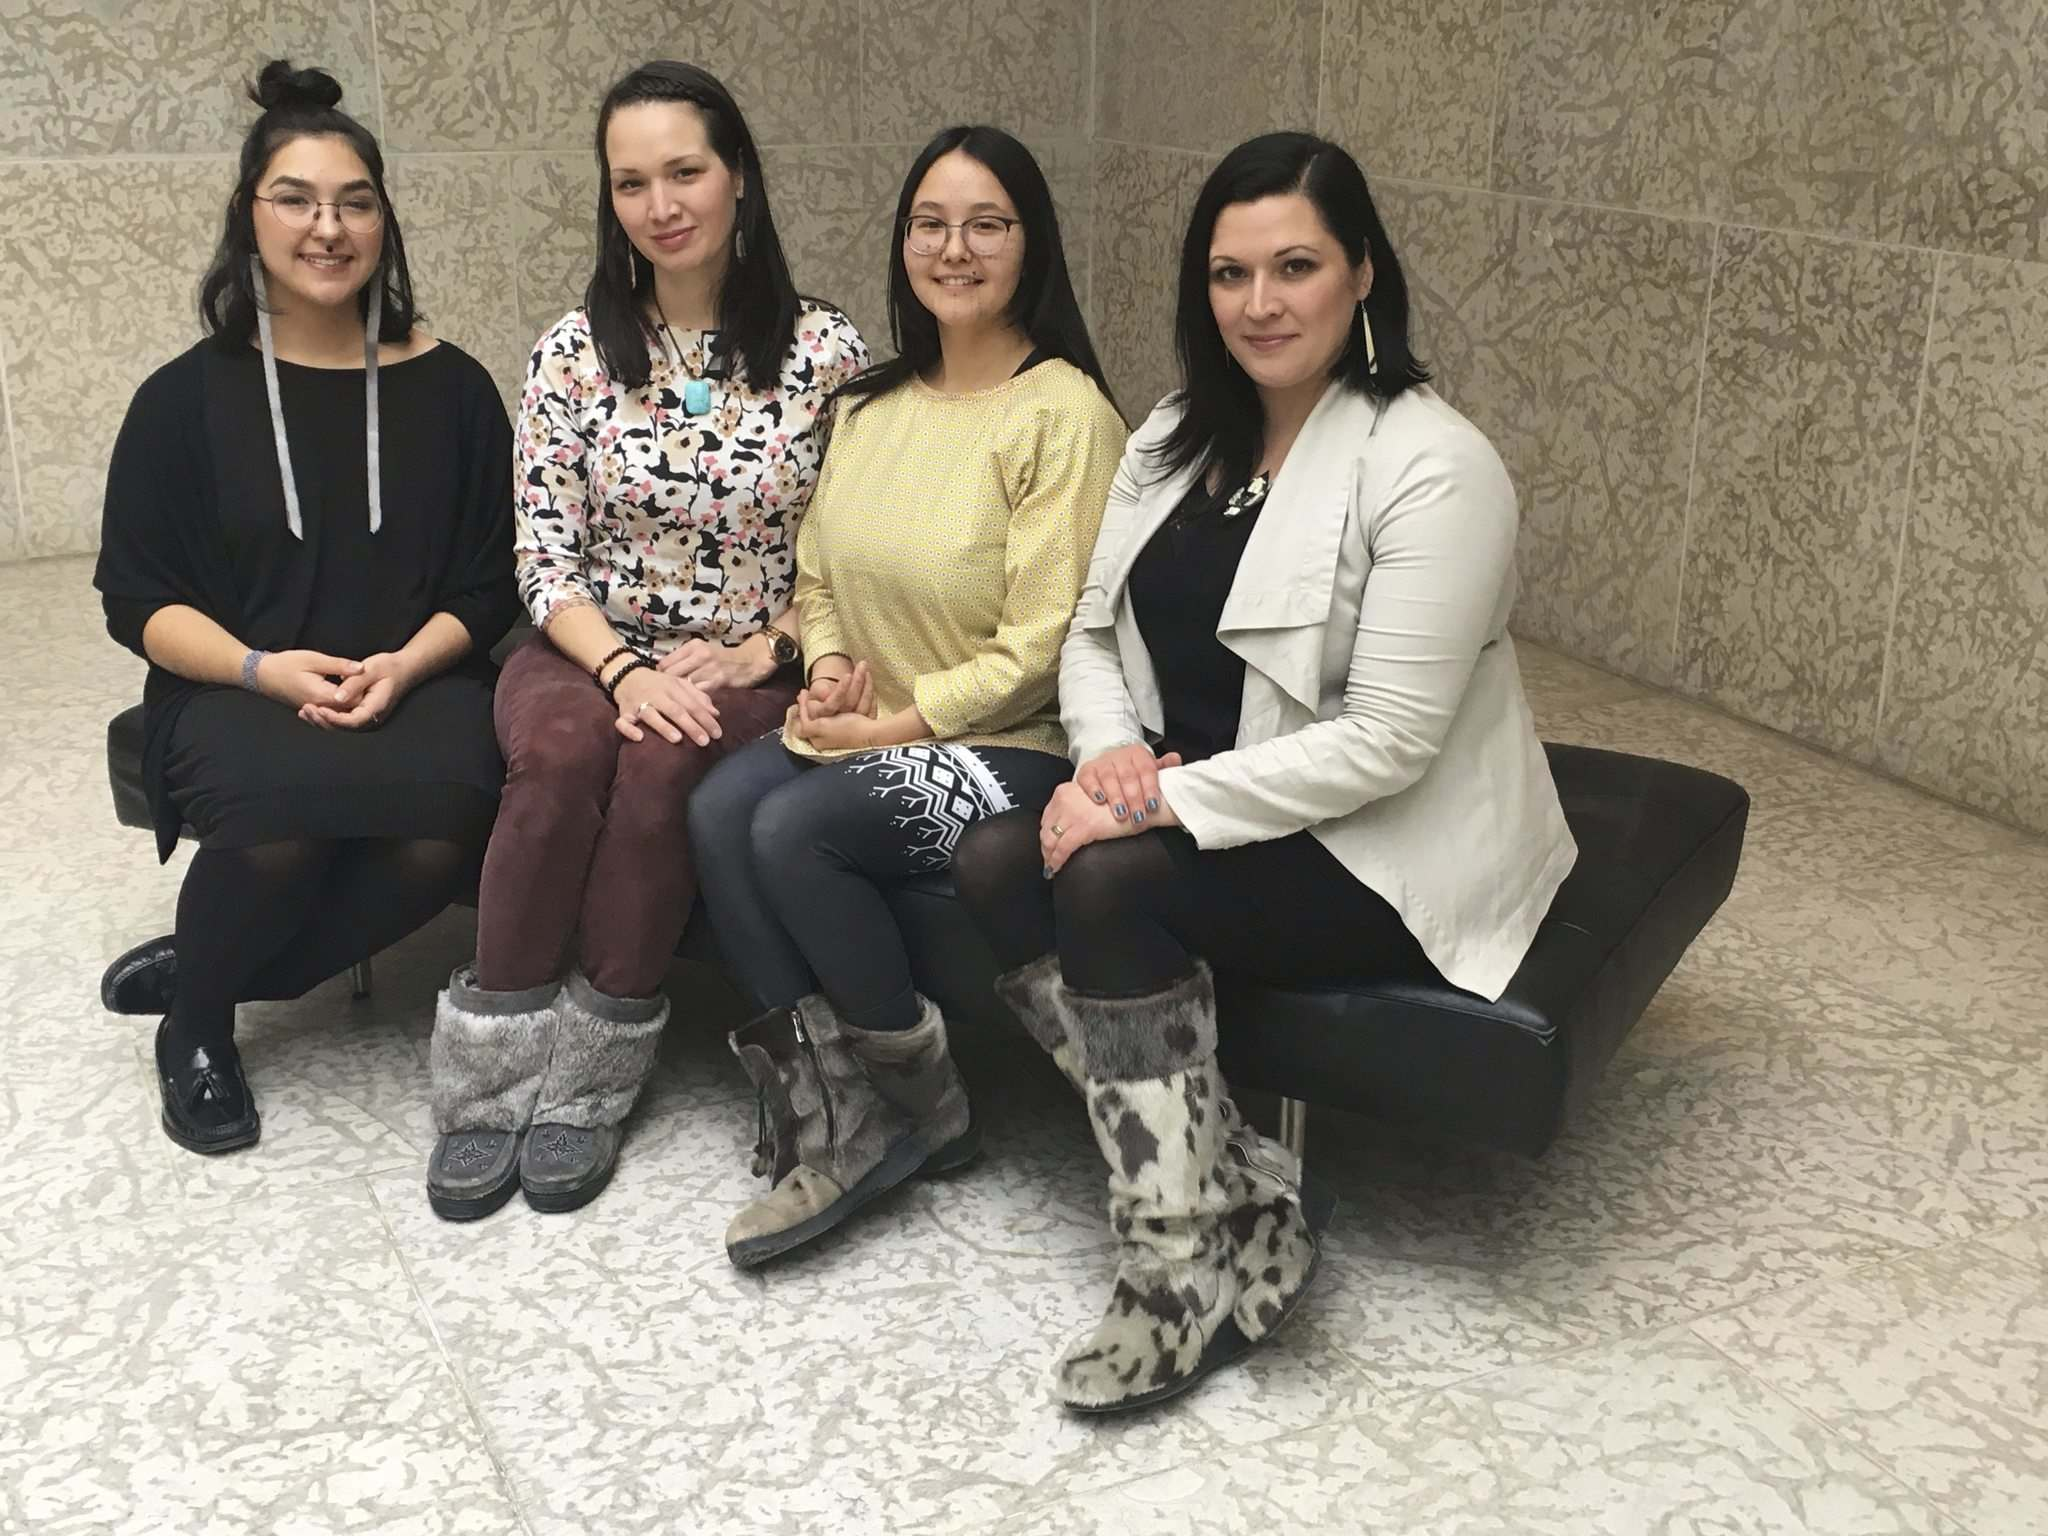 SUPPLIED</p><p>Jade Nasogaluak Carpenter (from left), Krista Ulujuk Zawadski, Asinnajaq, Dr. Heather Igloliorte will make up the Inuit Art Centre's all-Inuit, four-woman first team of curators.</p>